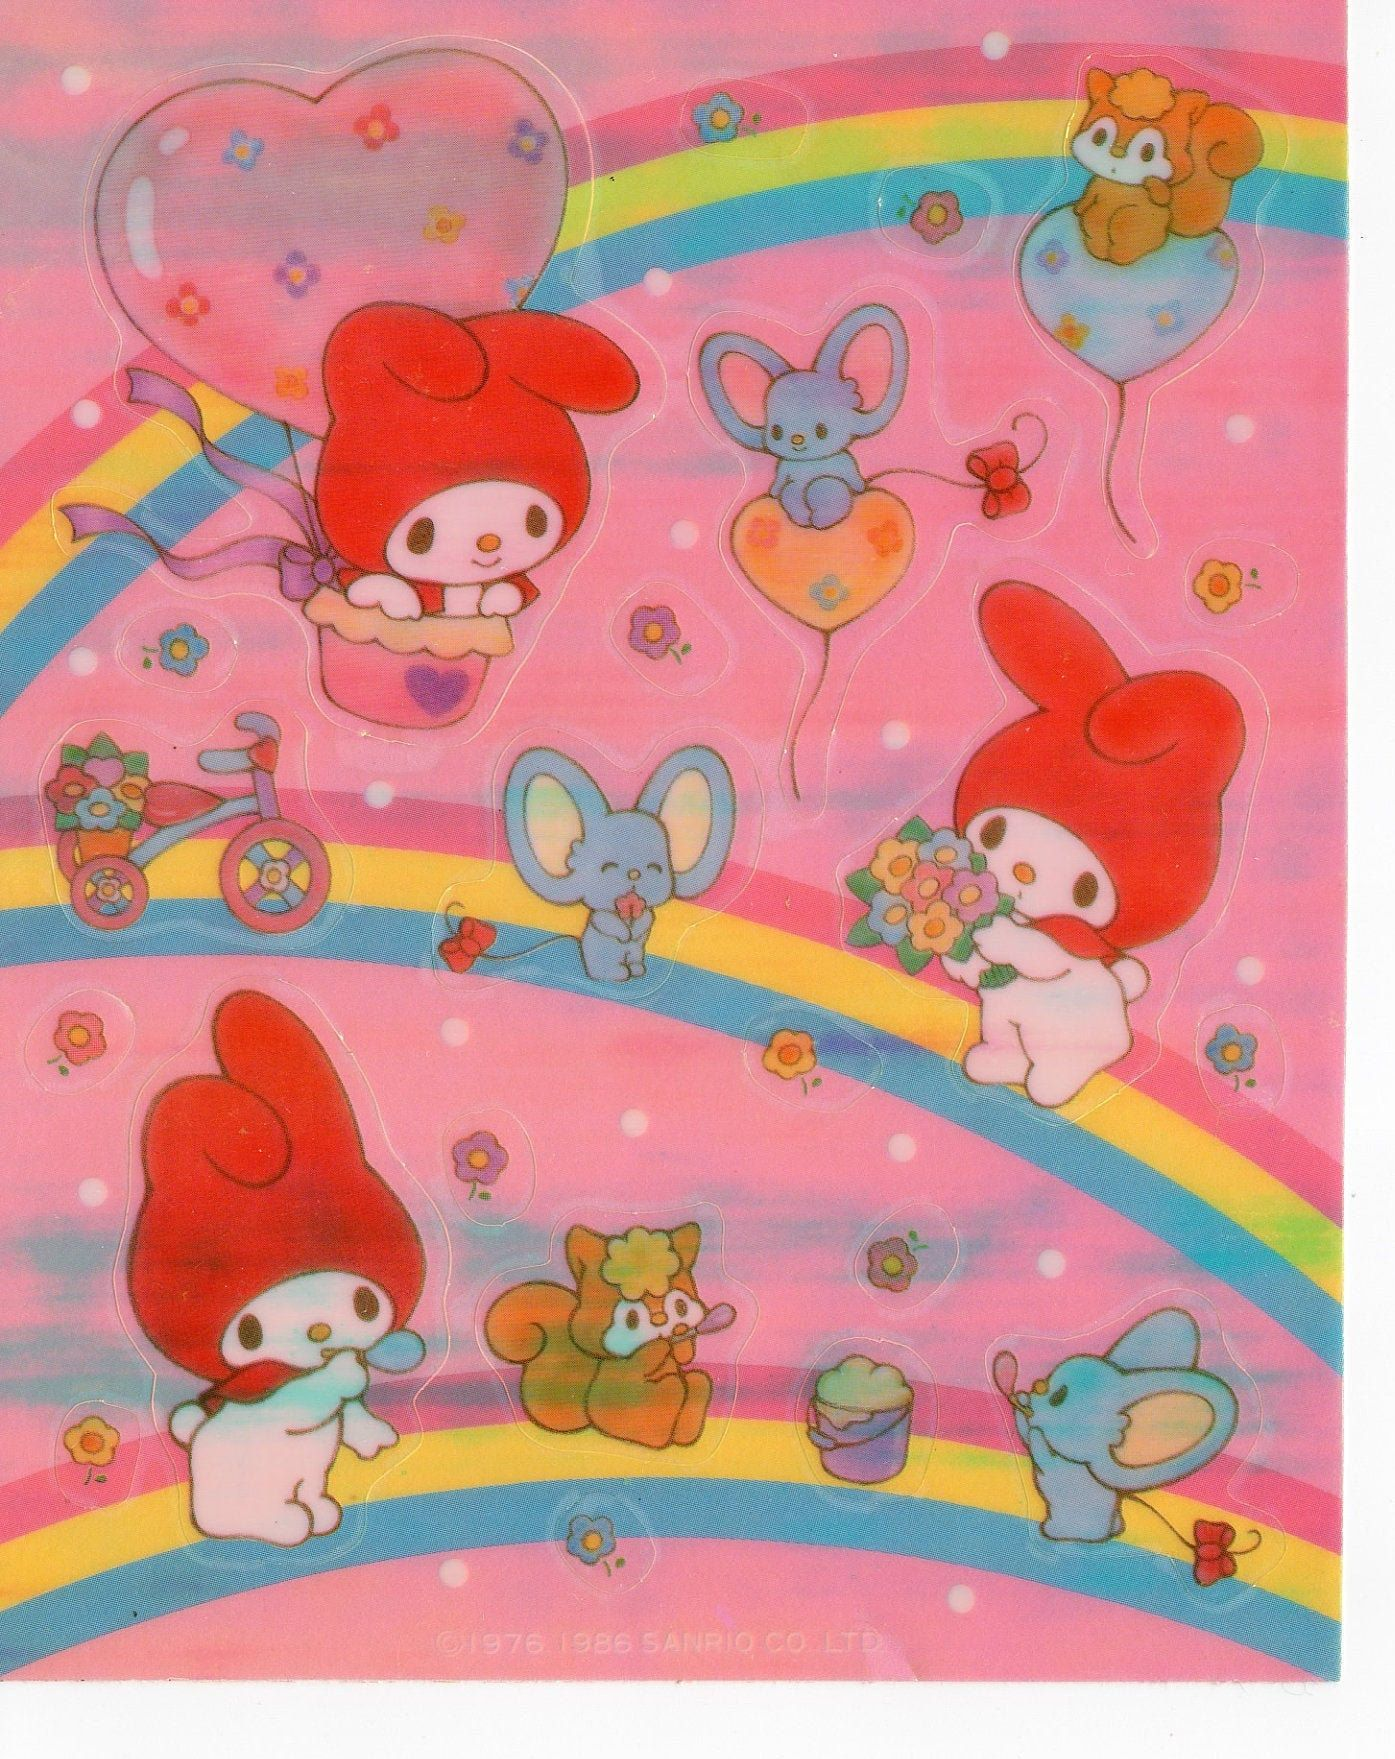 Vintage 1976, 1986 Sanrio My Melody Opal Iridescent Pearl Stickers - Rainbow Mouse Bunny & Squirrel Stickers